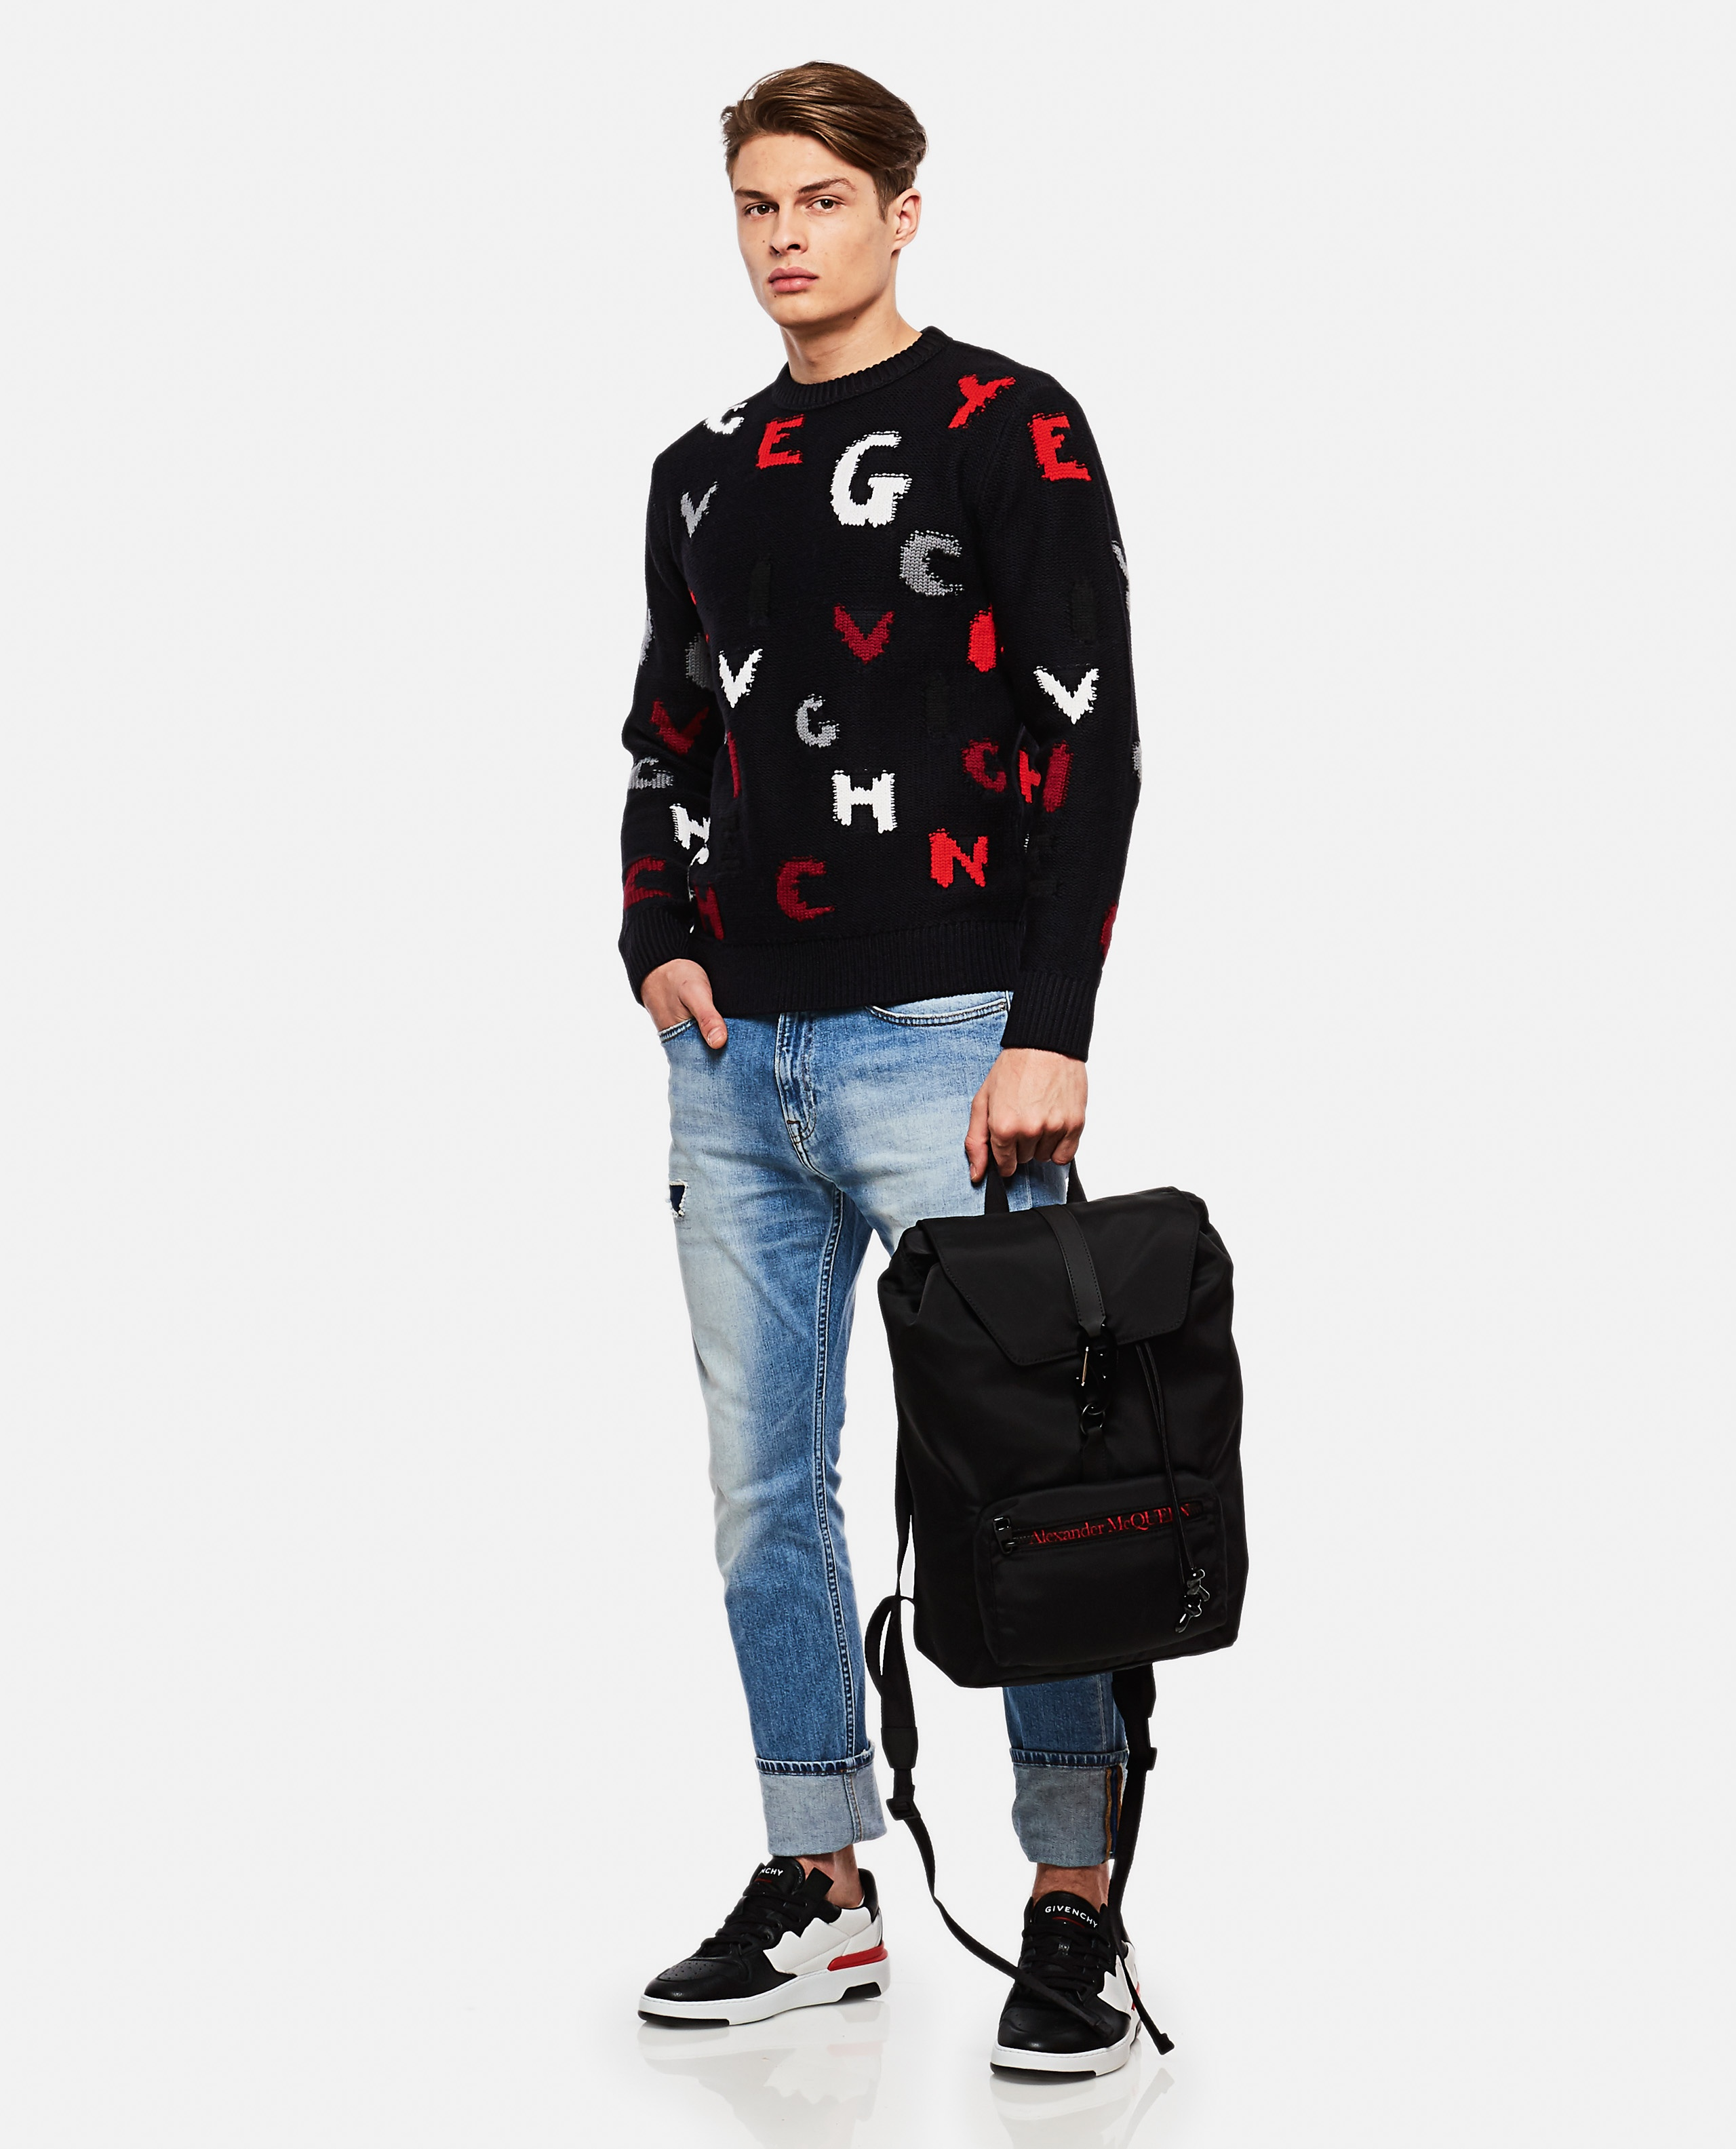 Crew-neck pullover with GIVENCHY letters Men Givenchy 000135780033491 2